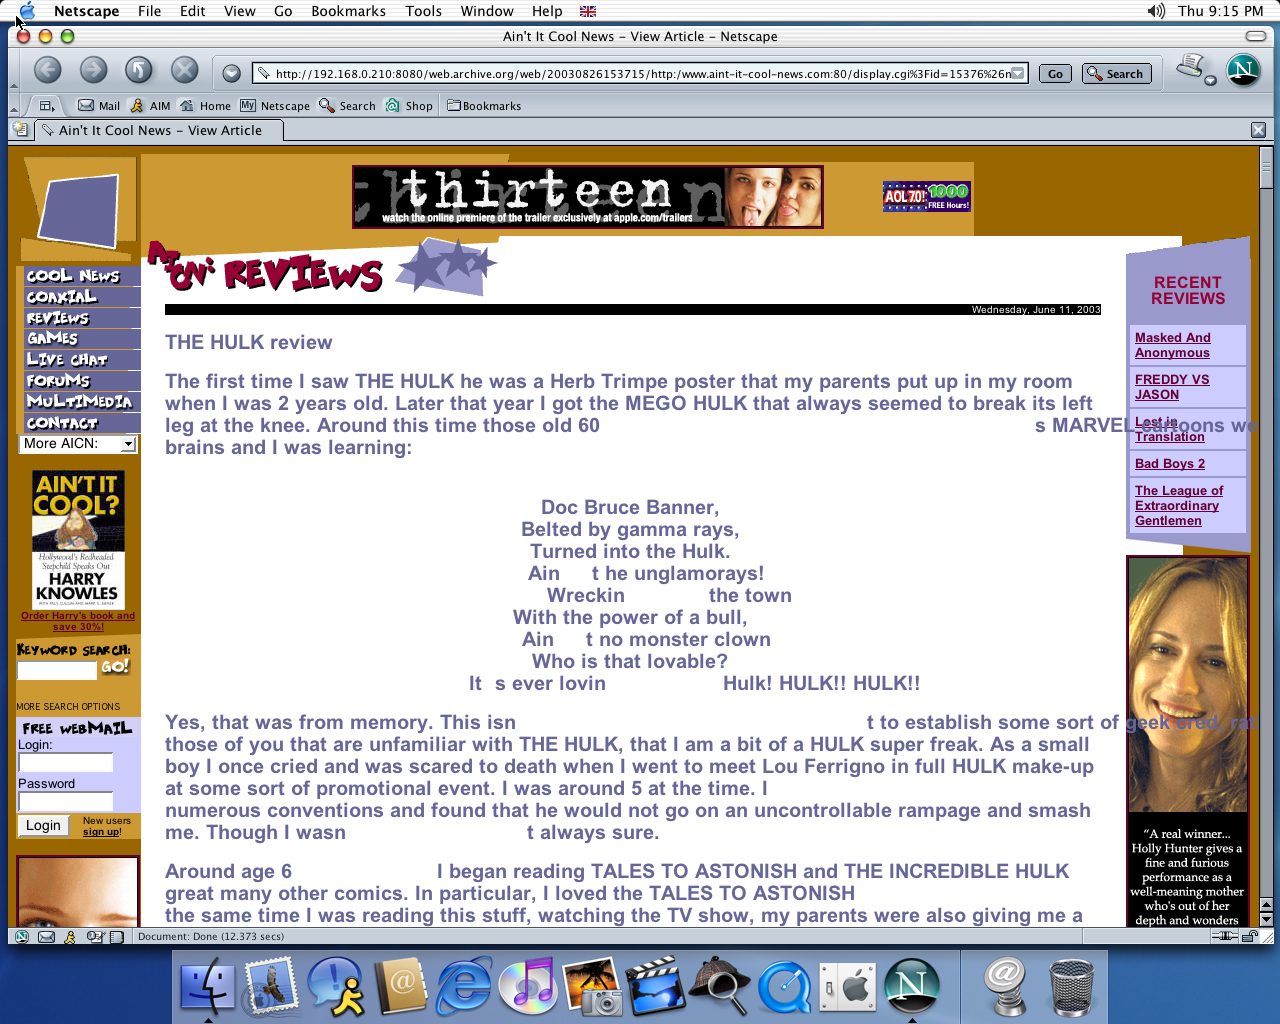 OS X 10.2 PPC with Netscape 7.0 displaying a page from Ain't it Cool News archived at August 26, 2003 at 15:37:15